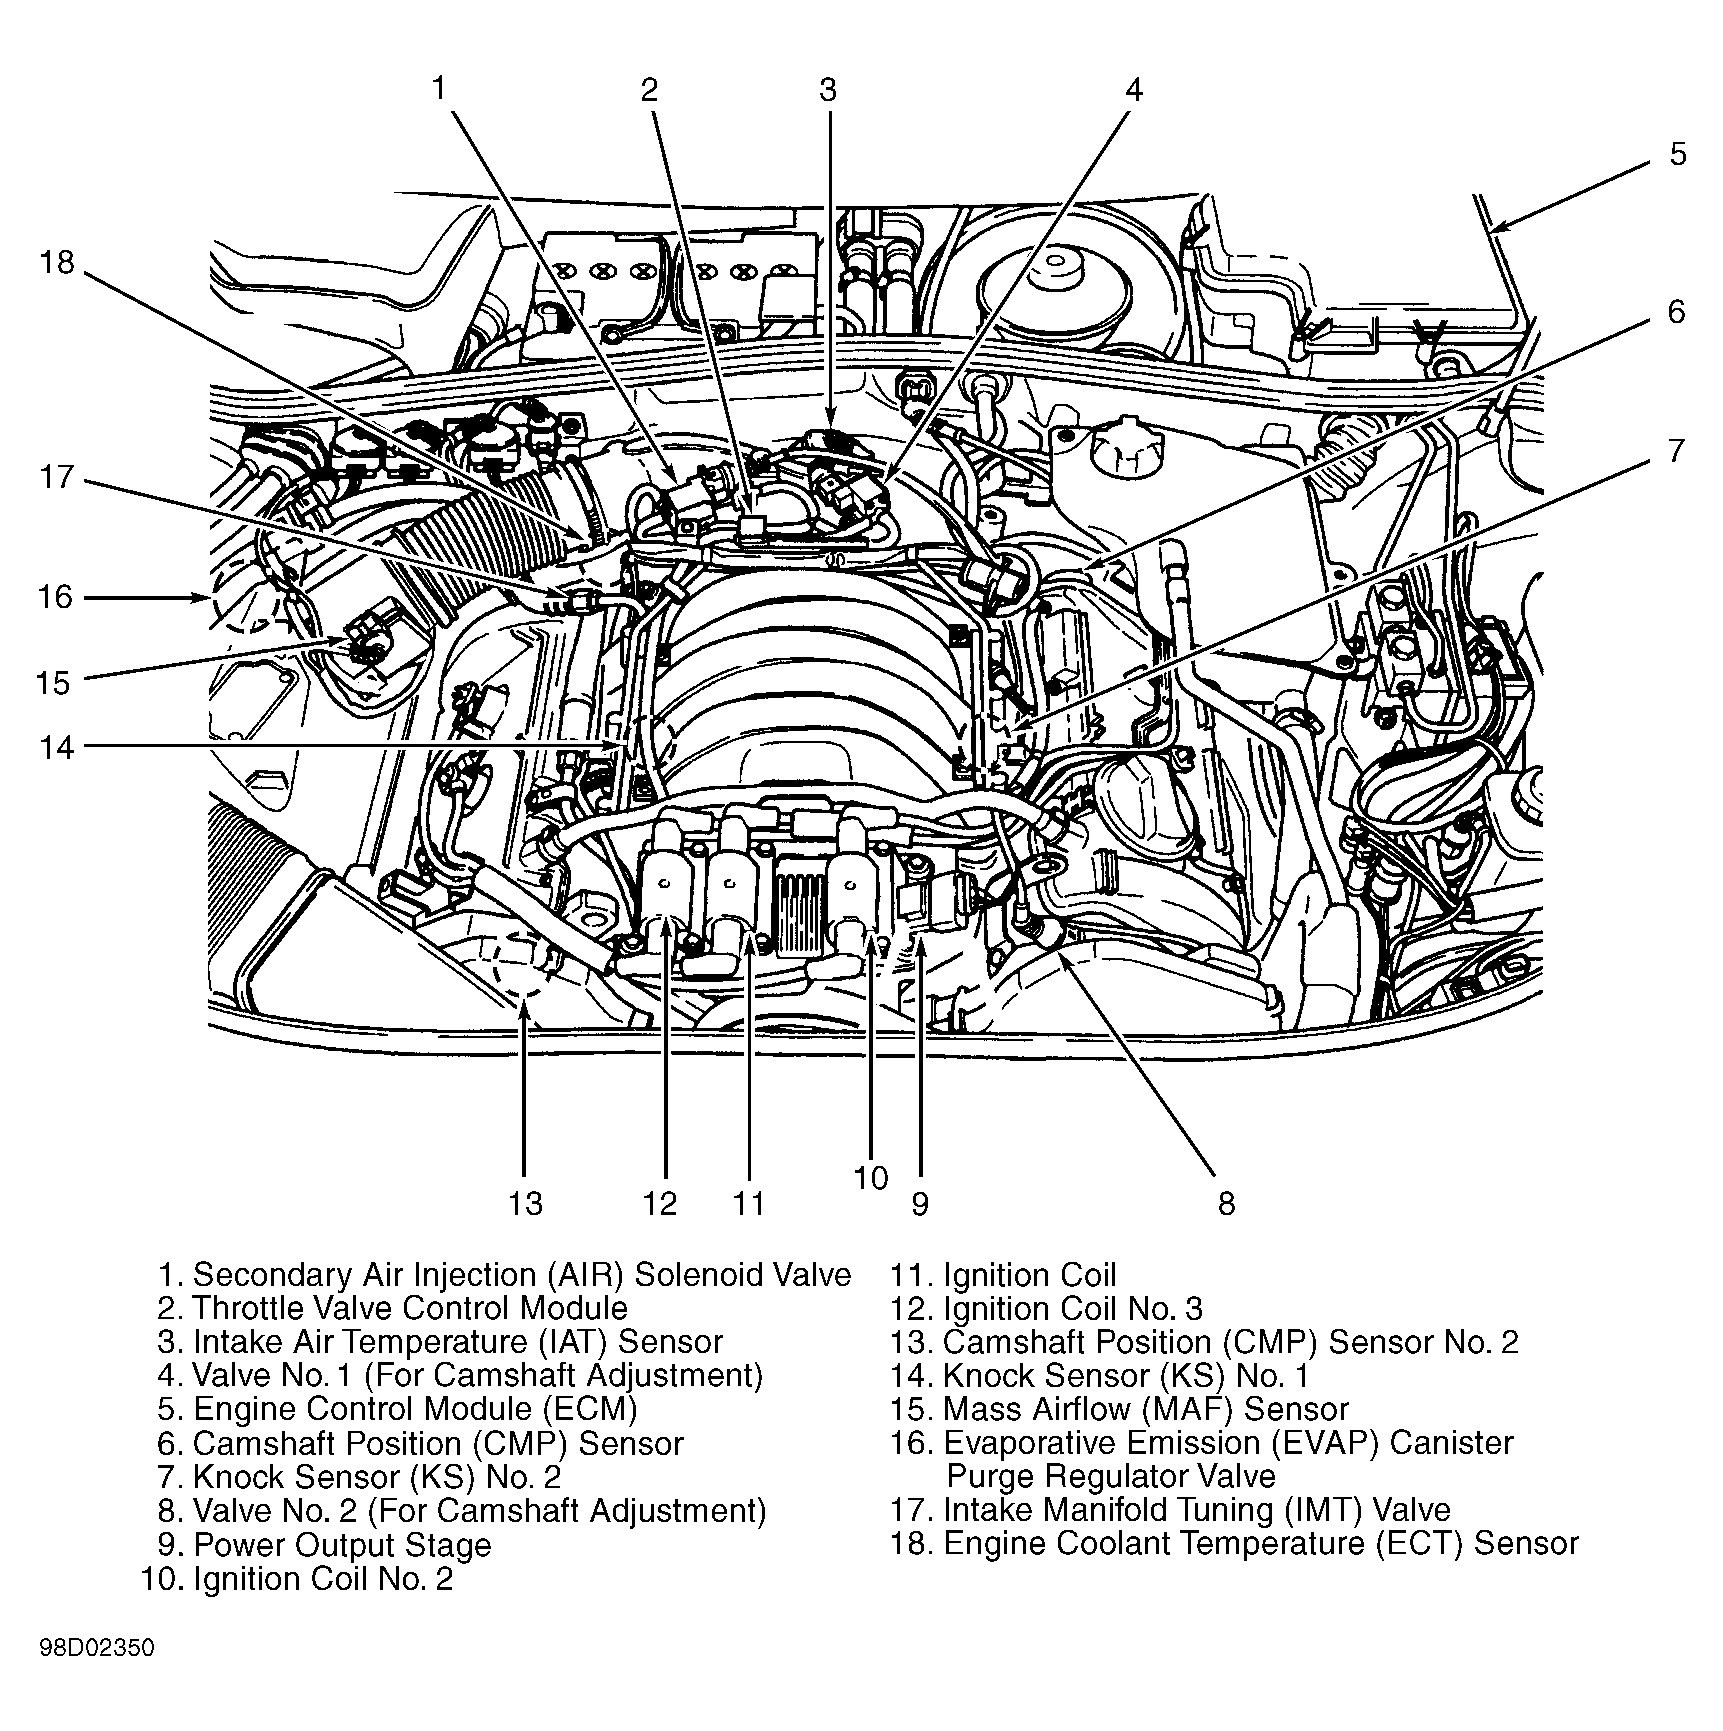 04 Durango Hemi Engine Diagram Nissan Juke 2013 Fuse Diagram